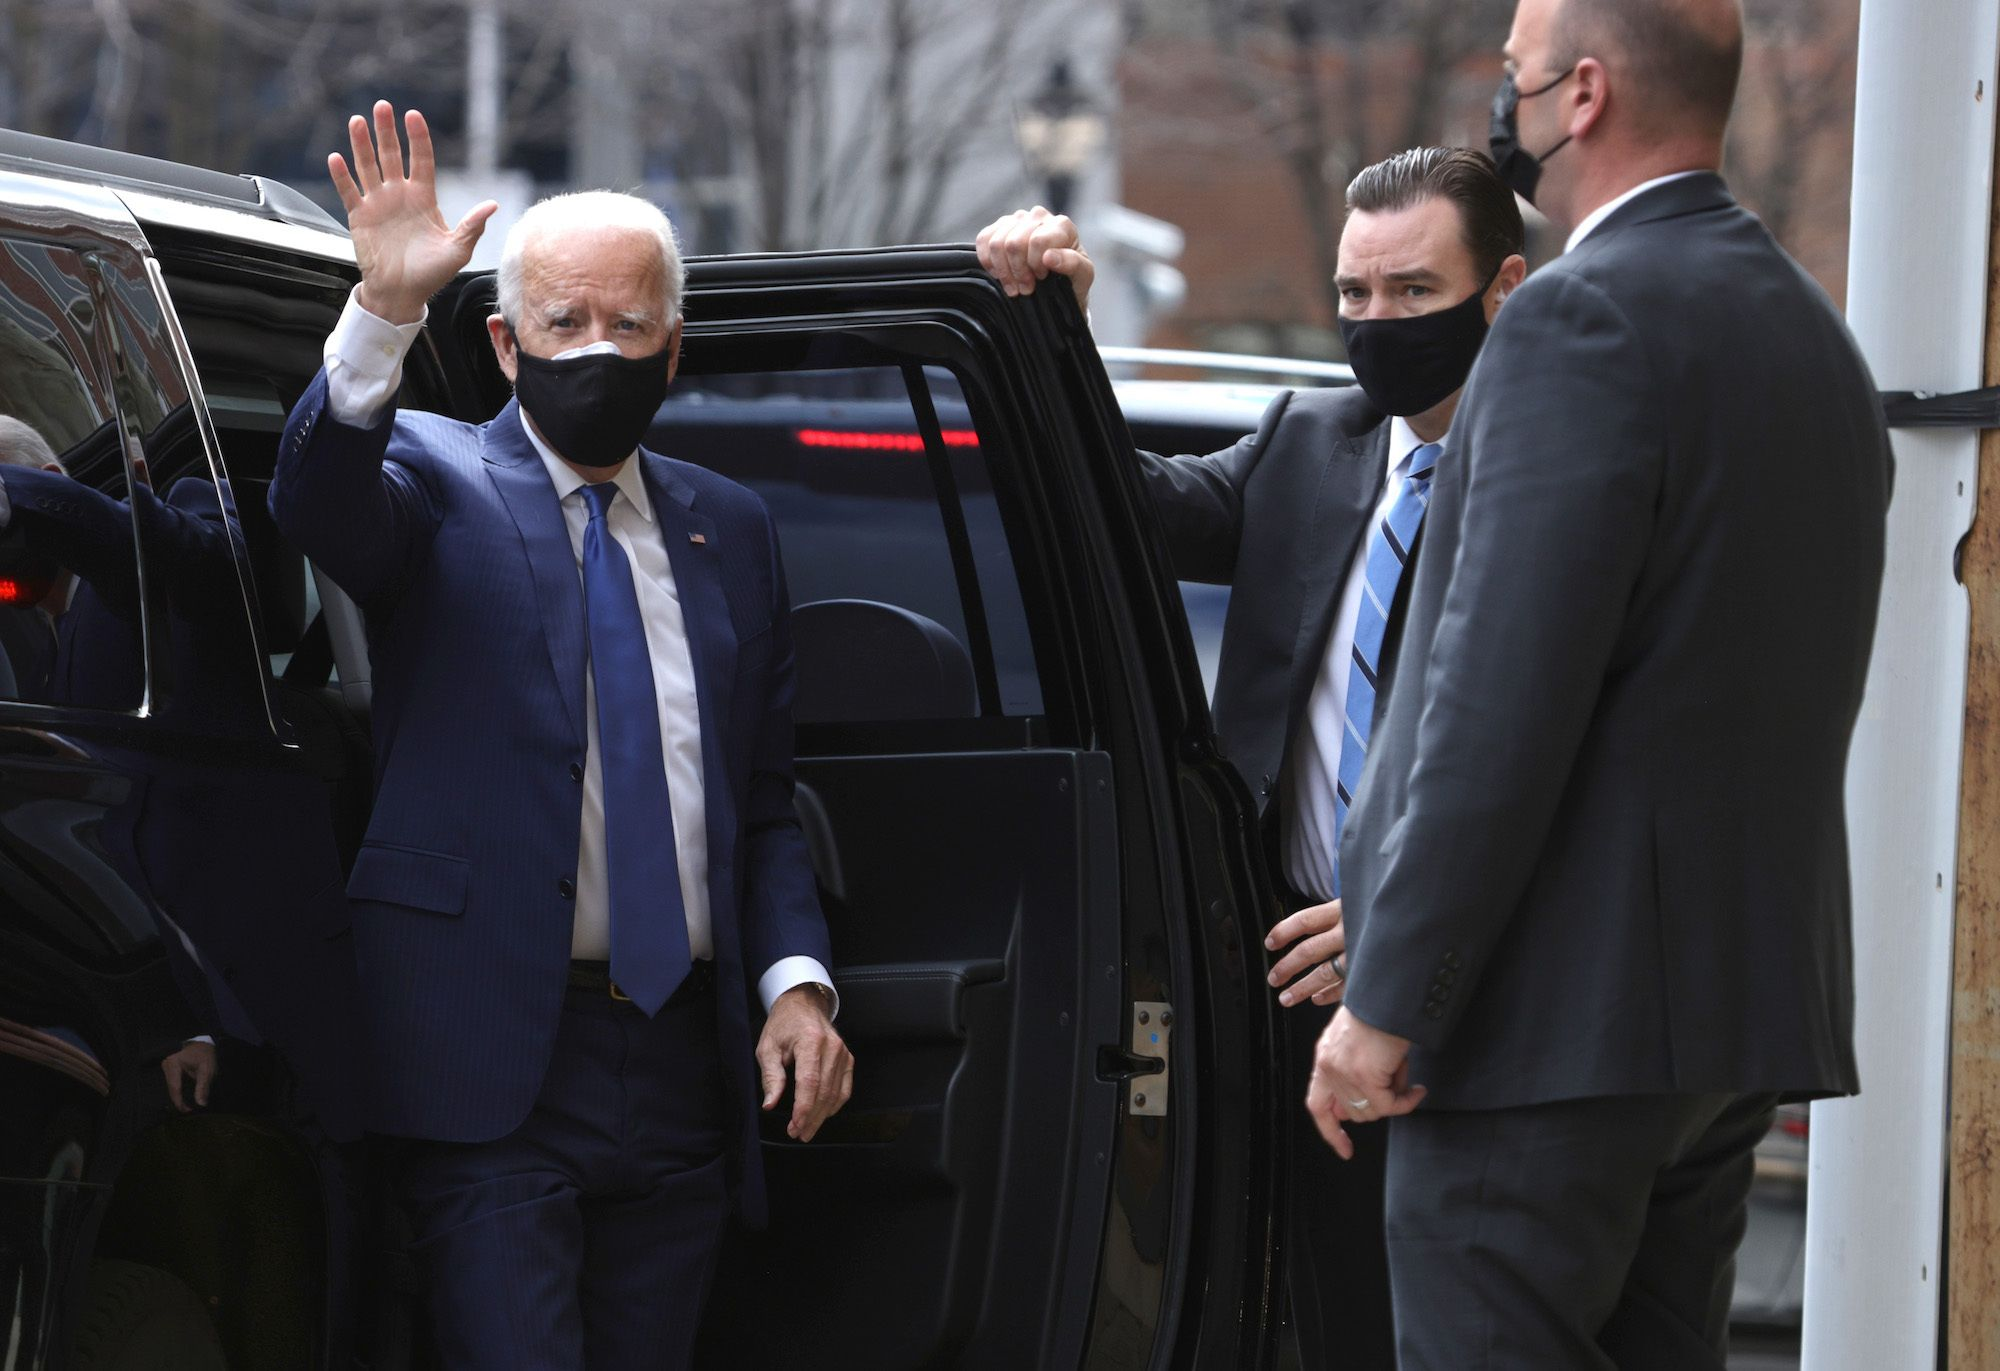 Joe Biden's Staffing Choices Are Looking Great, Except for Those Two Guys